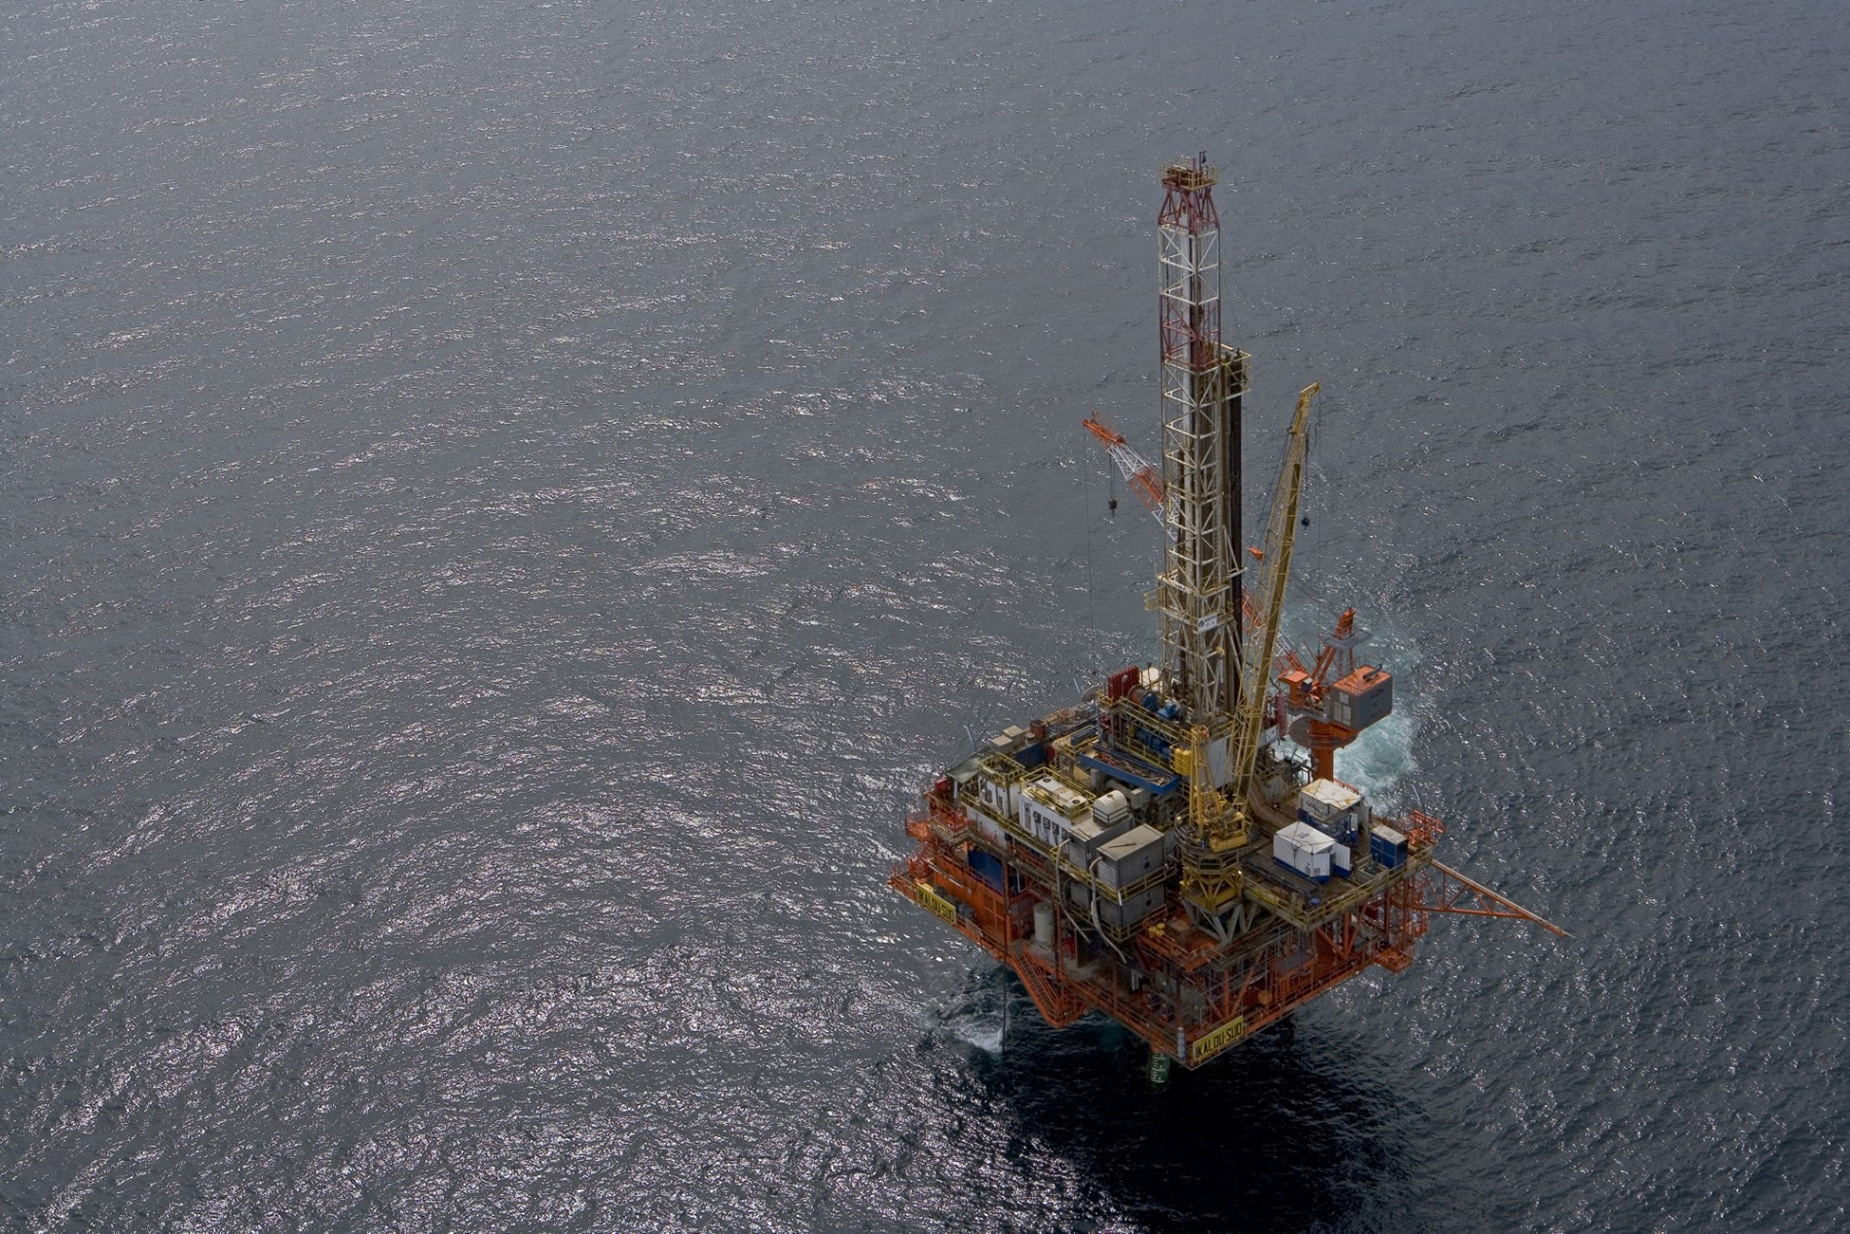 ENI's Vår Energi gets 17 new exploration licenses in Norway